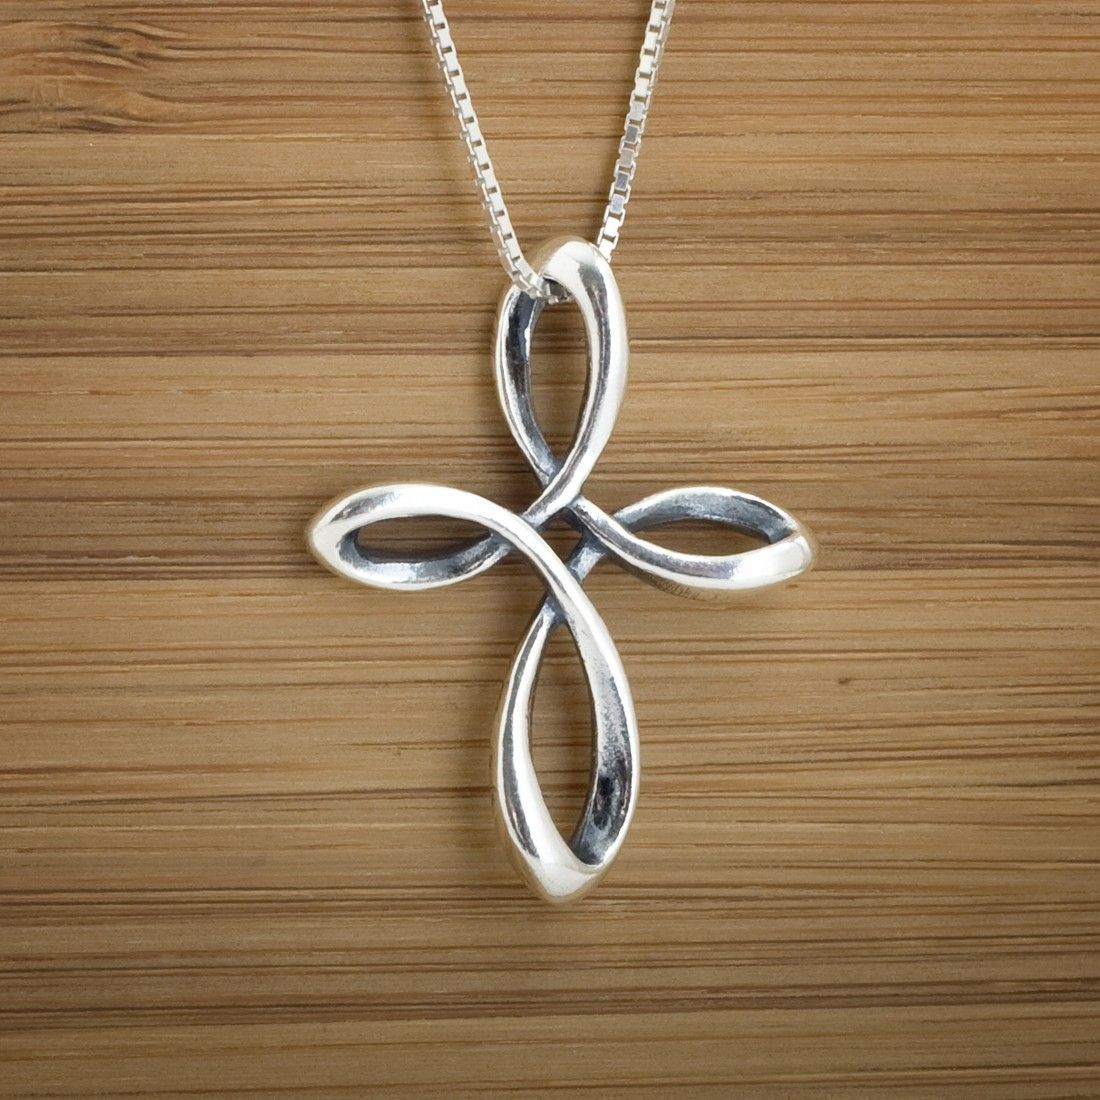 cross necklace style religious lariat sterling pendant infinity dp y com daily available silver amazon styles my finishes